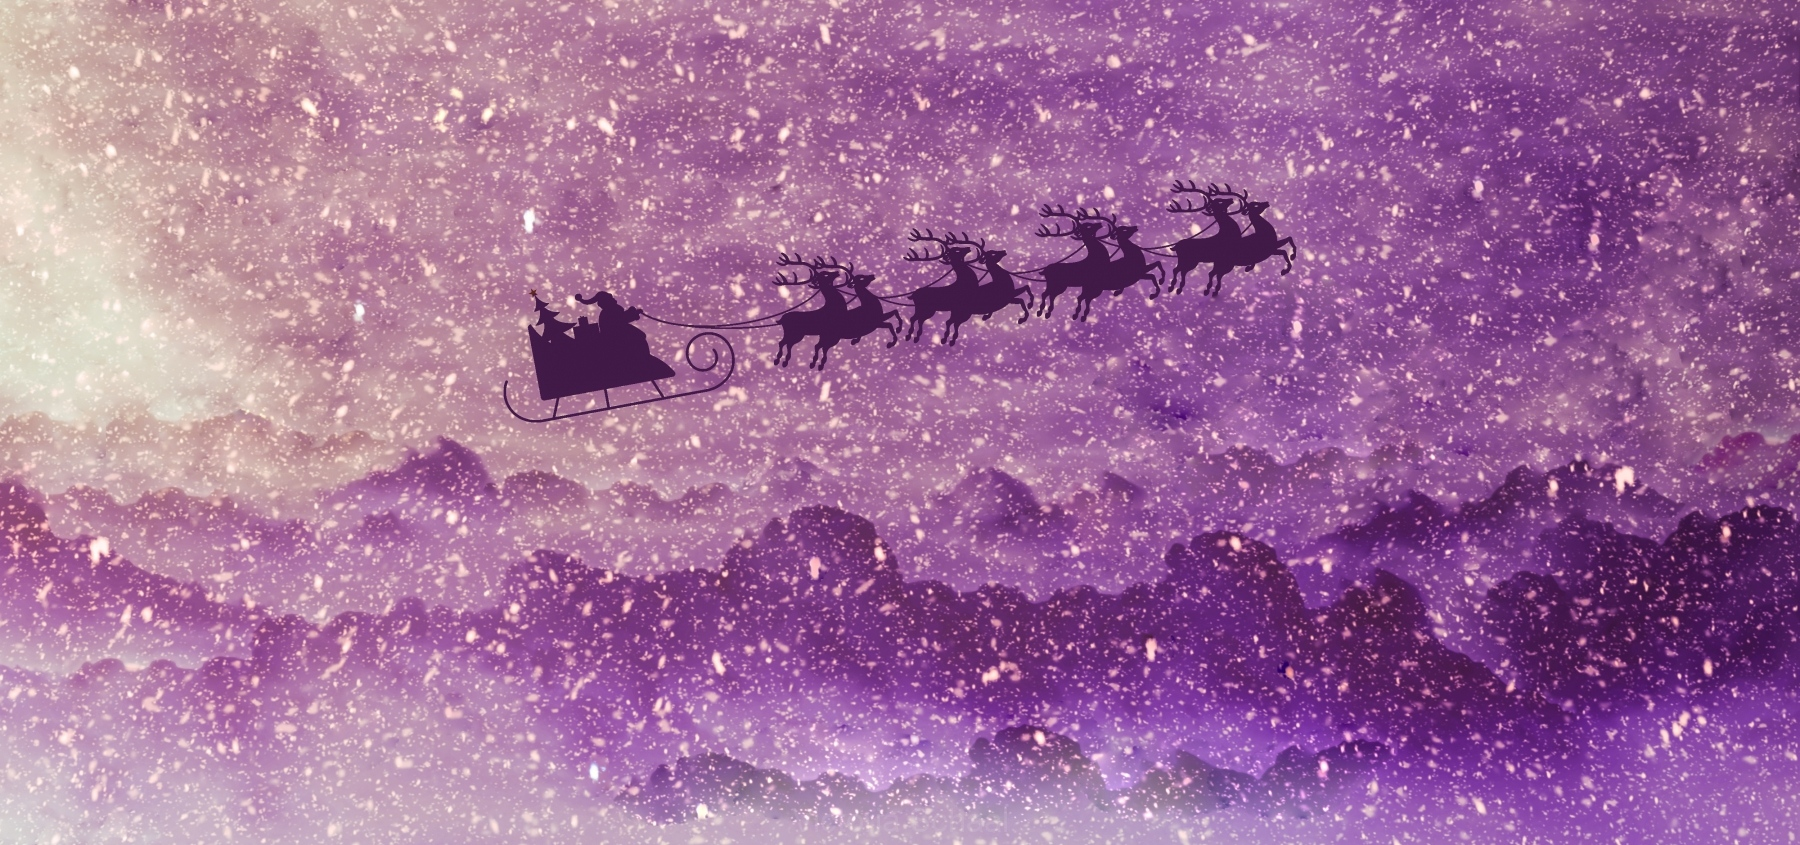 Santa and deer flyong on sleigh in snowy illustrated winter landscape